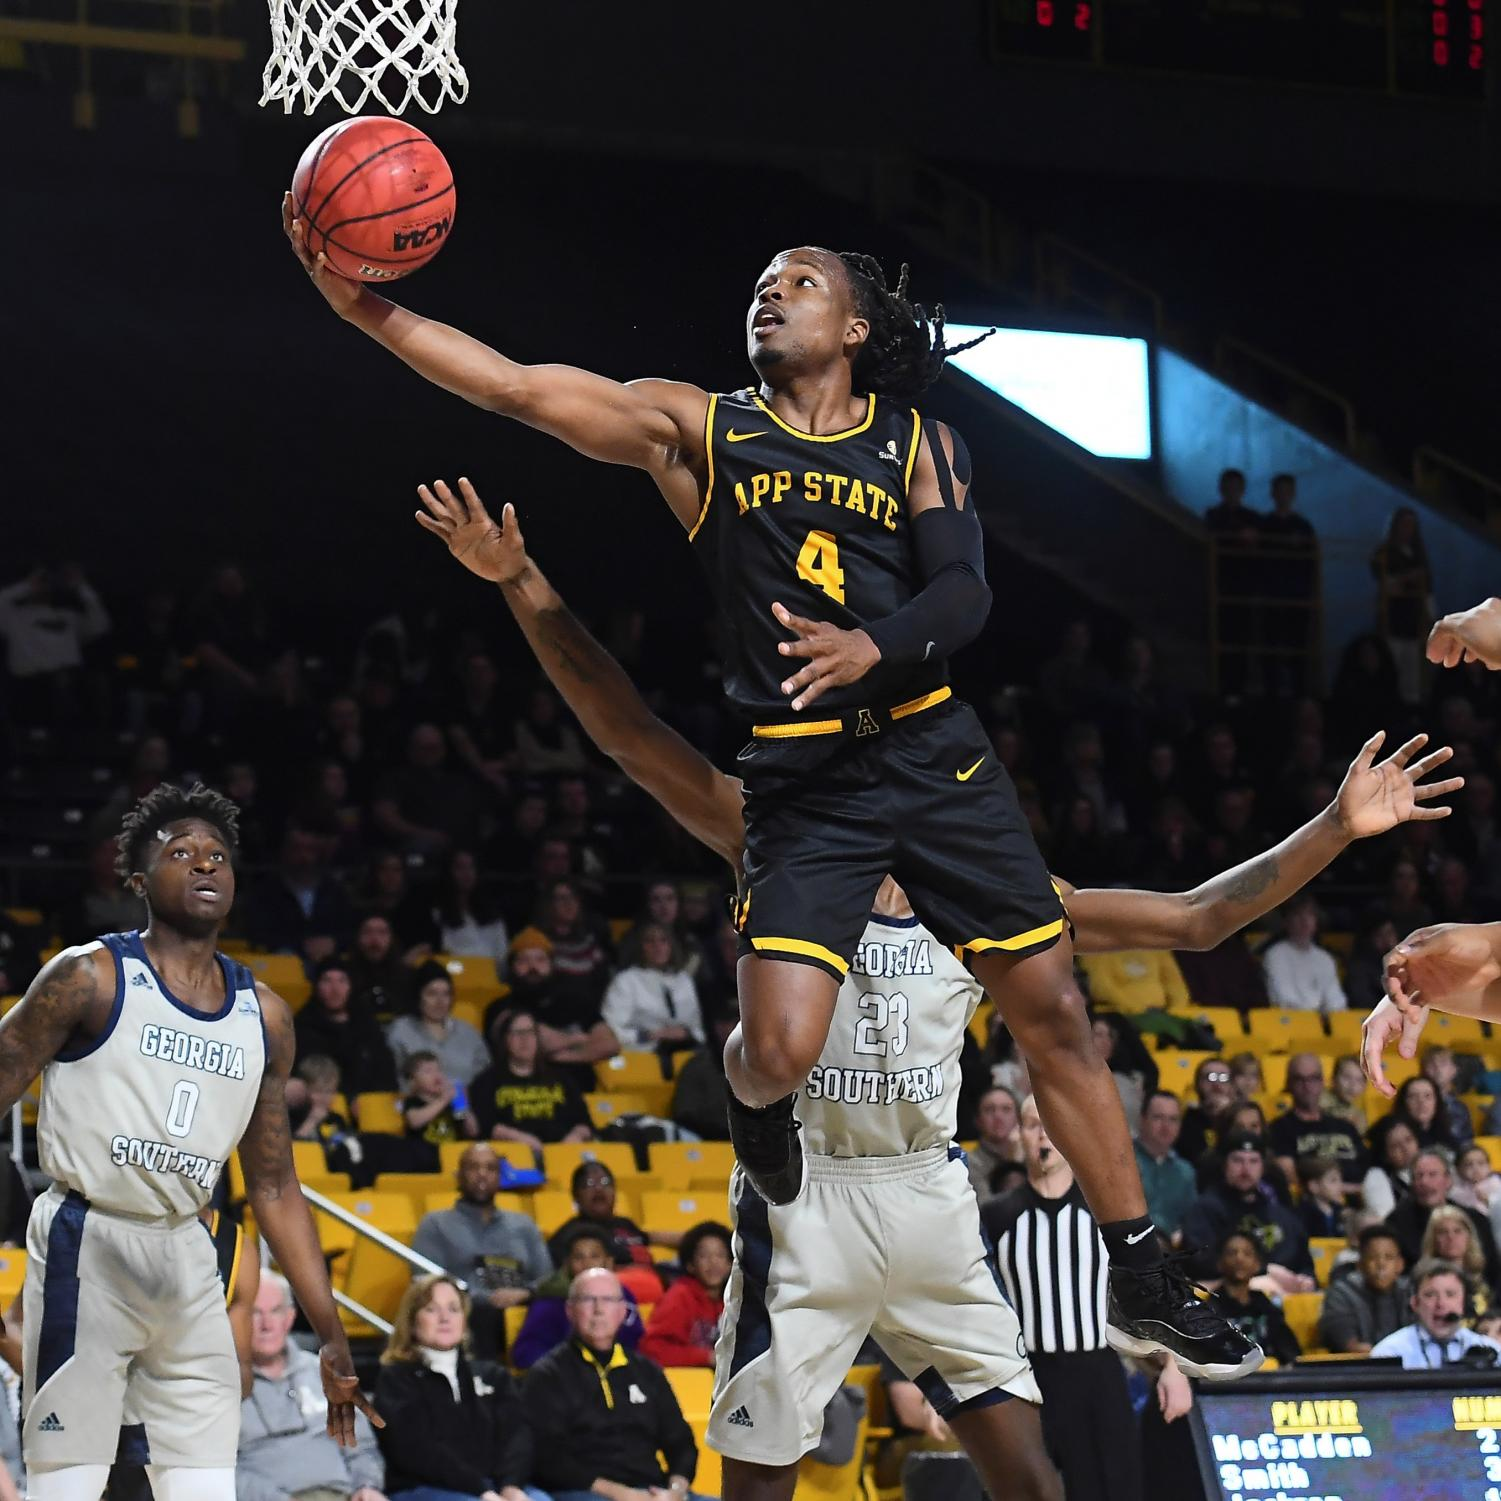 Senior guard O'Showen Williams recorded the first double-double of his career in App State's 83-80 overtime win over Arkansas State on Jan. 16.